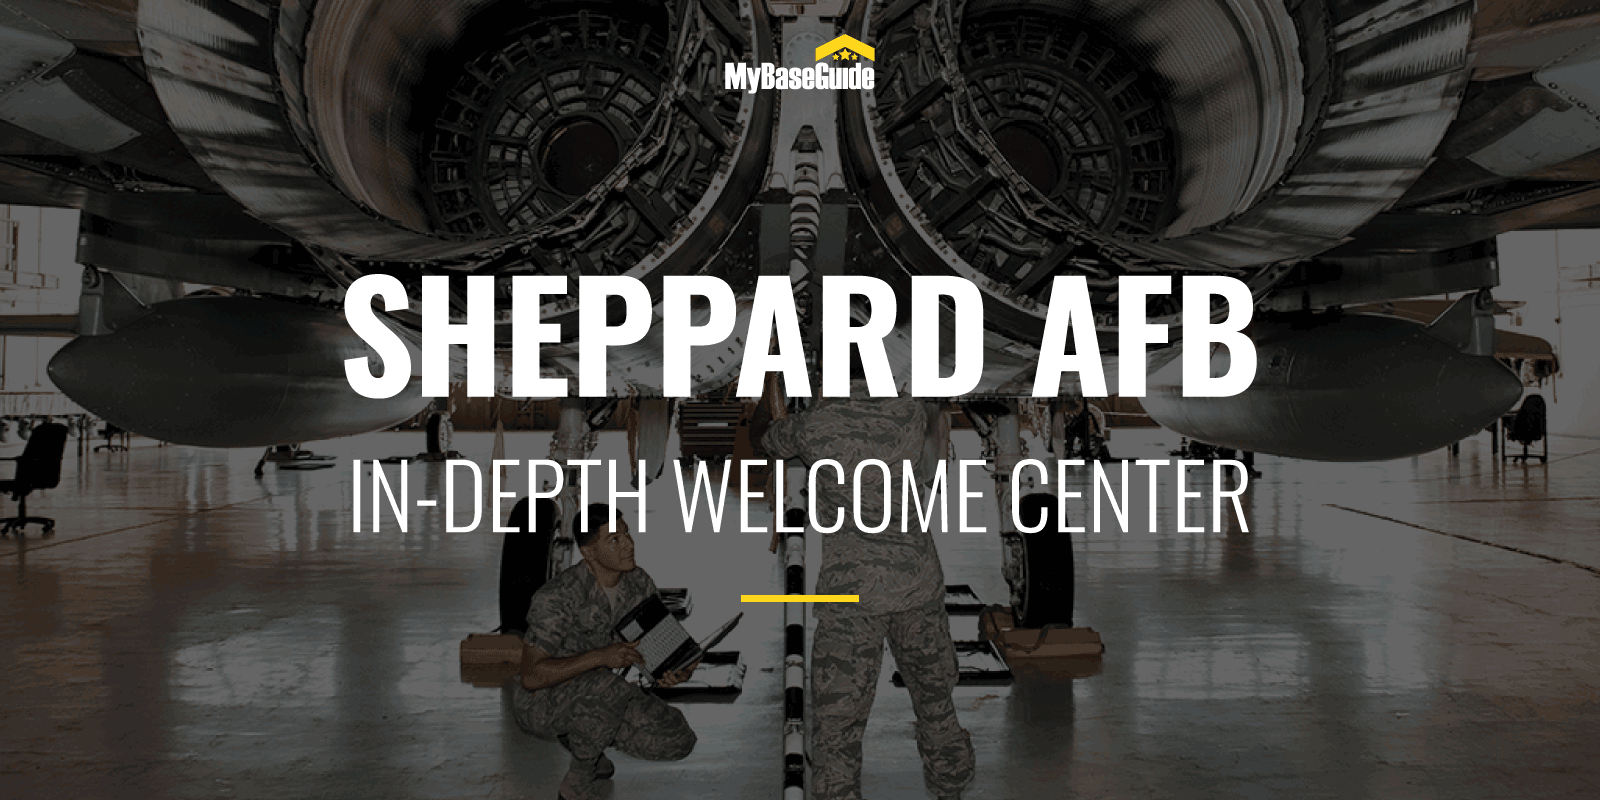 Sheppard Air Force Base: In-Depth Welcome Center